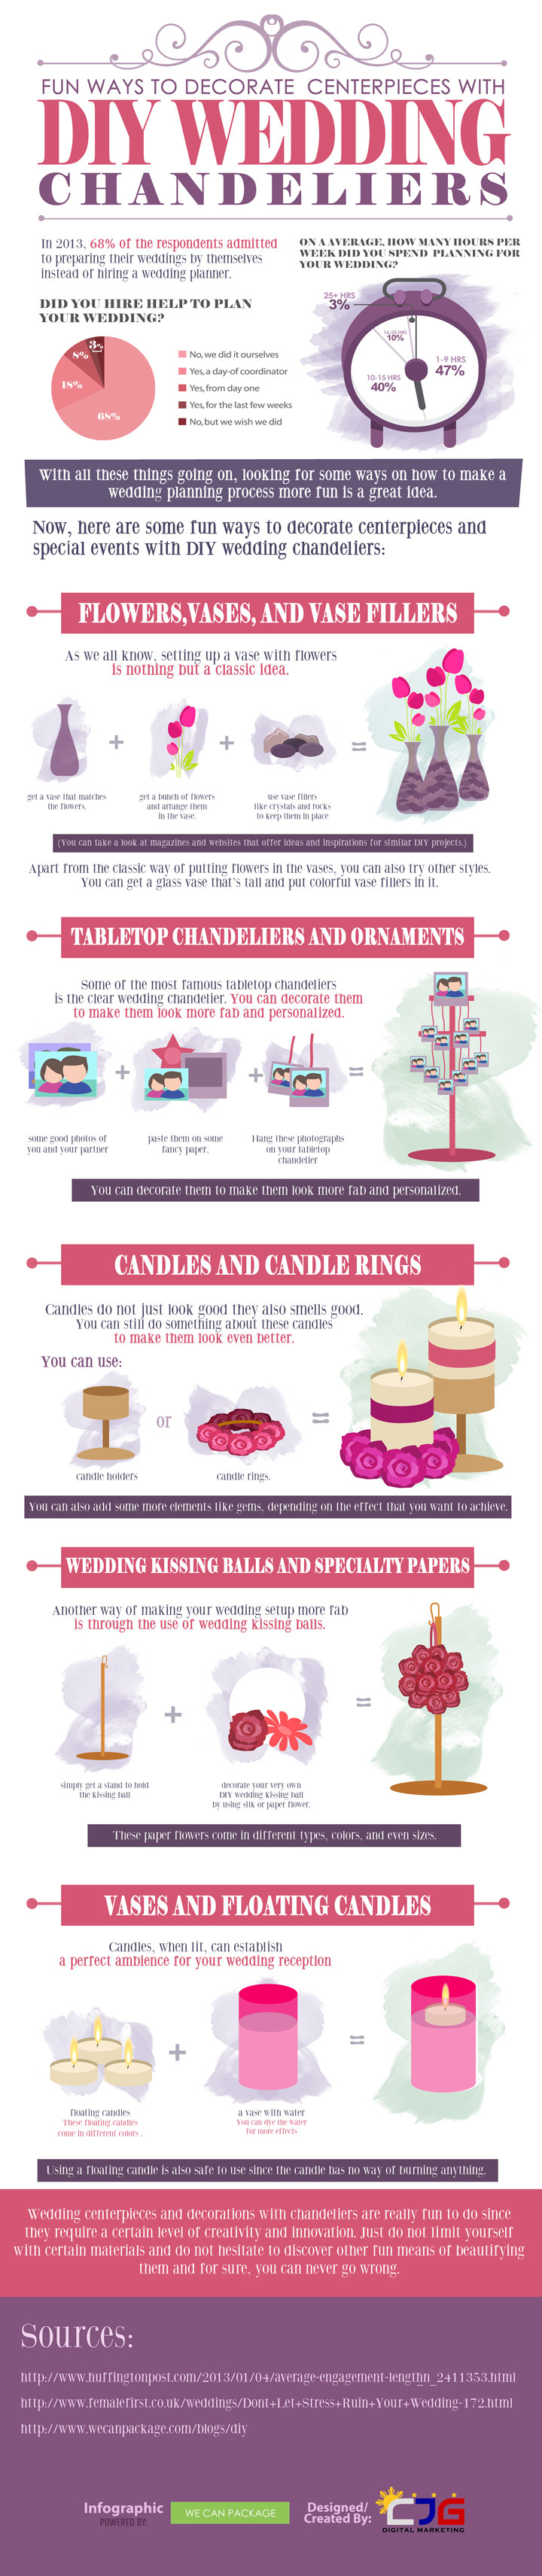 Fun Ways Decorate Centerpieces With DIY Wedding Chandeliers #infographic